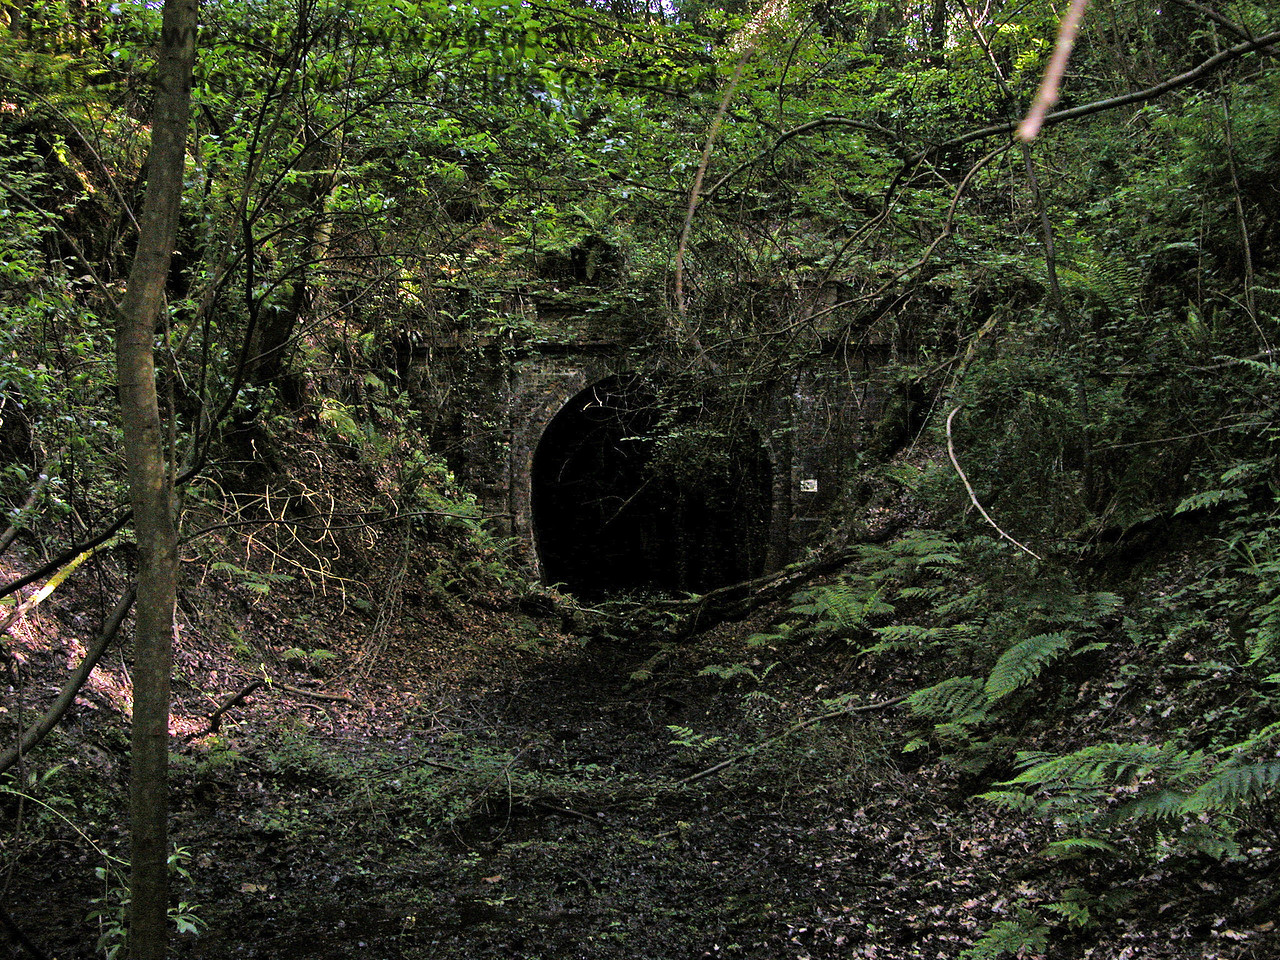 The northern portal of the abandoned Badgers Oak Tunnel.  The.tunnel is only of sufficient bore for a single track and curves slightly at the southern end.   31.05.2004.   At the time of the visit this was a dangerous environment and a hard hat area.  Visitors needed to be suitably equipped. There were overhanging and unstable trees, the ground was covered by a deep sludge, and the tunnel was waterlogged.  It was unsafe to enter.